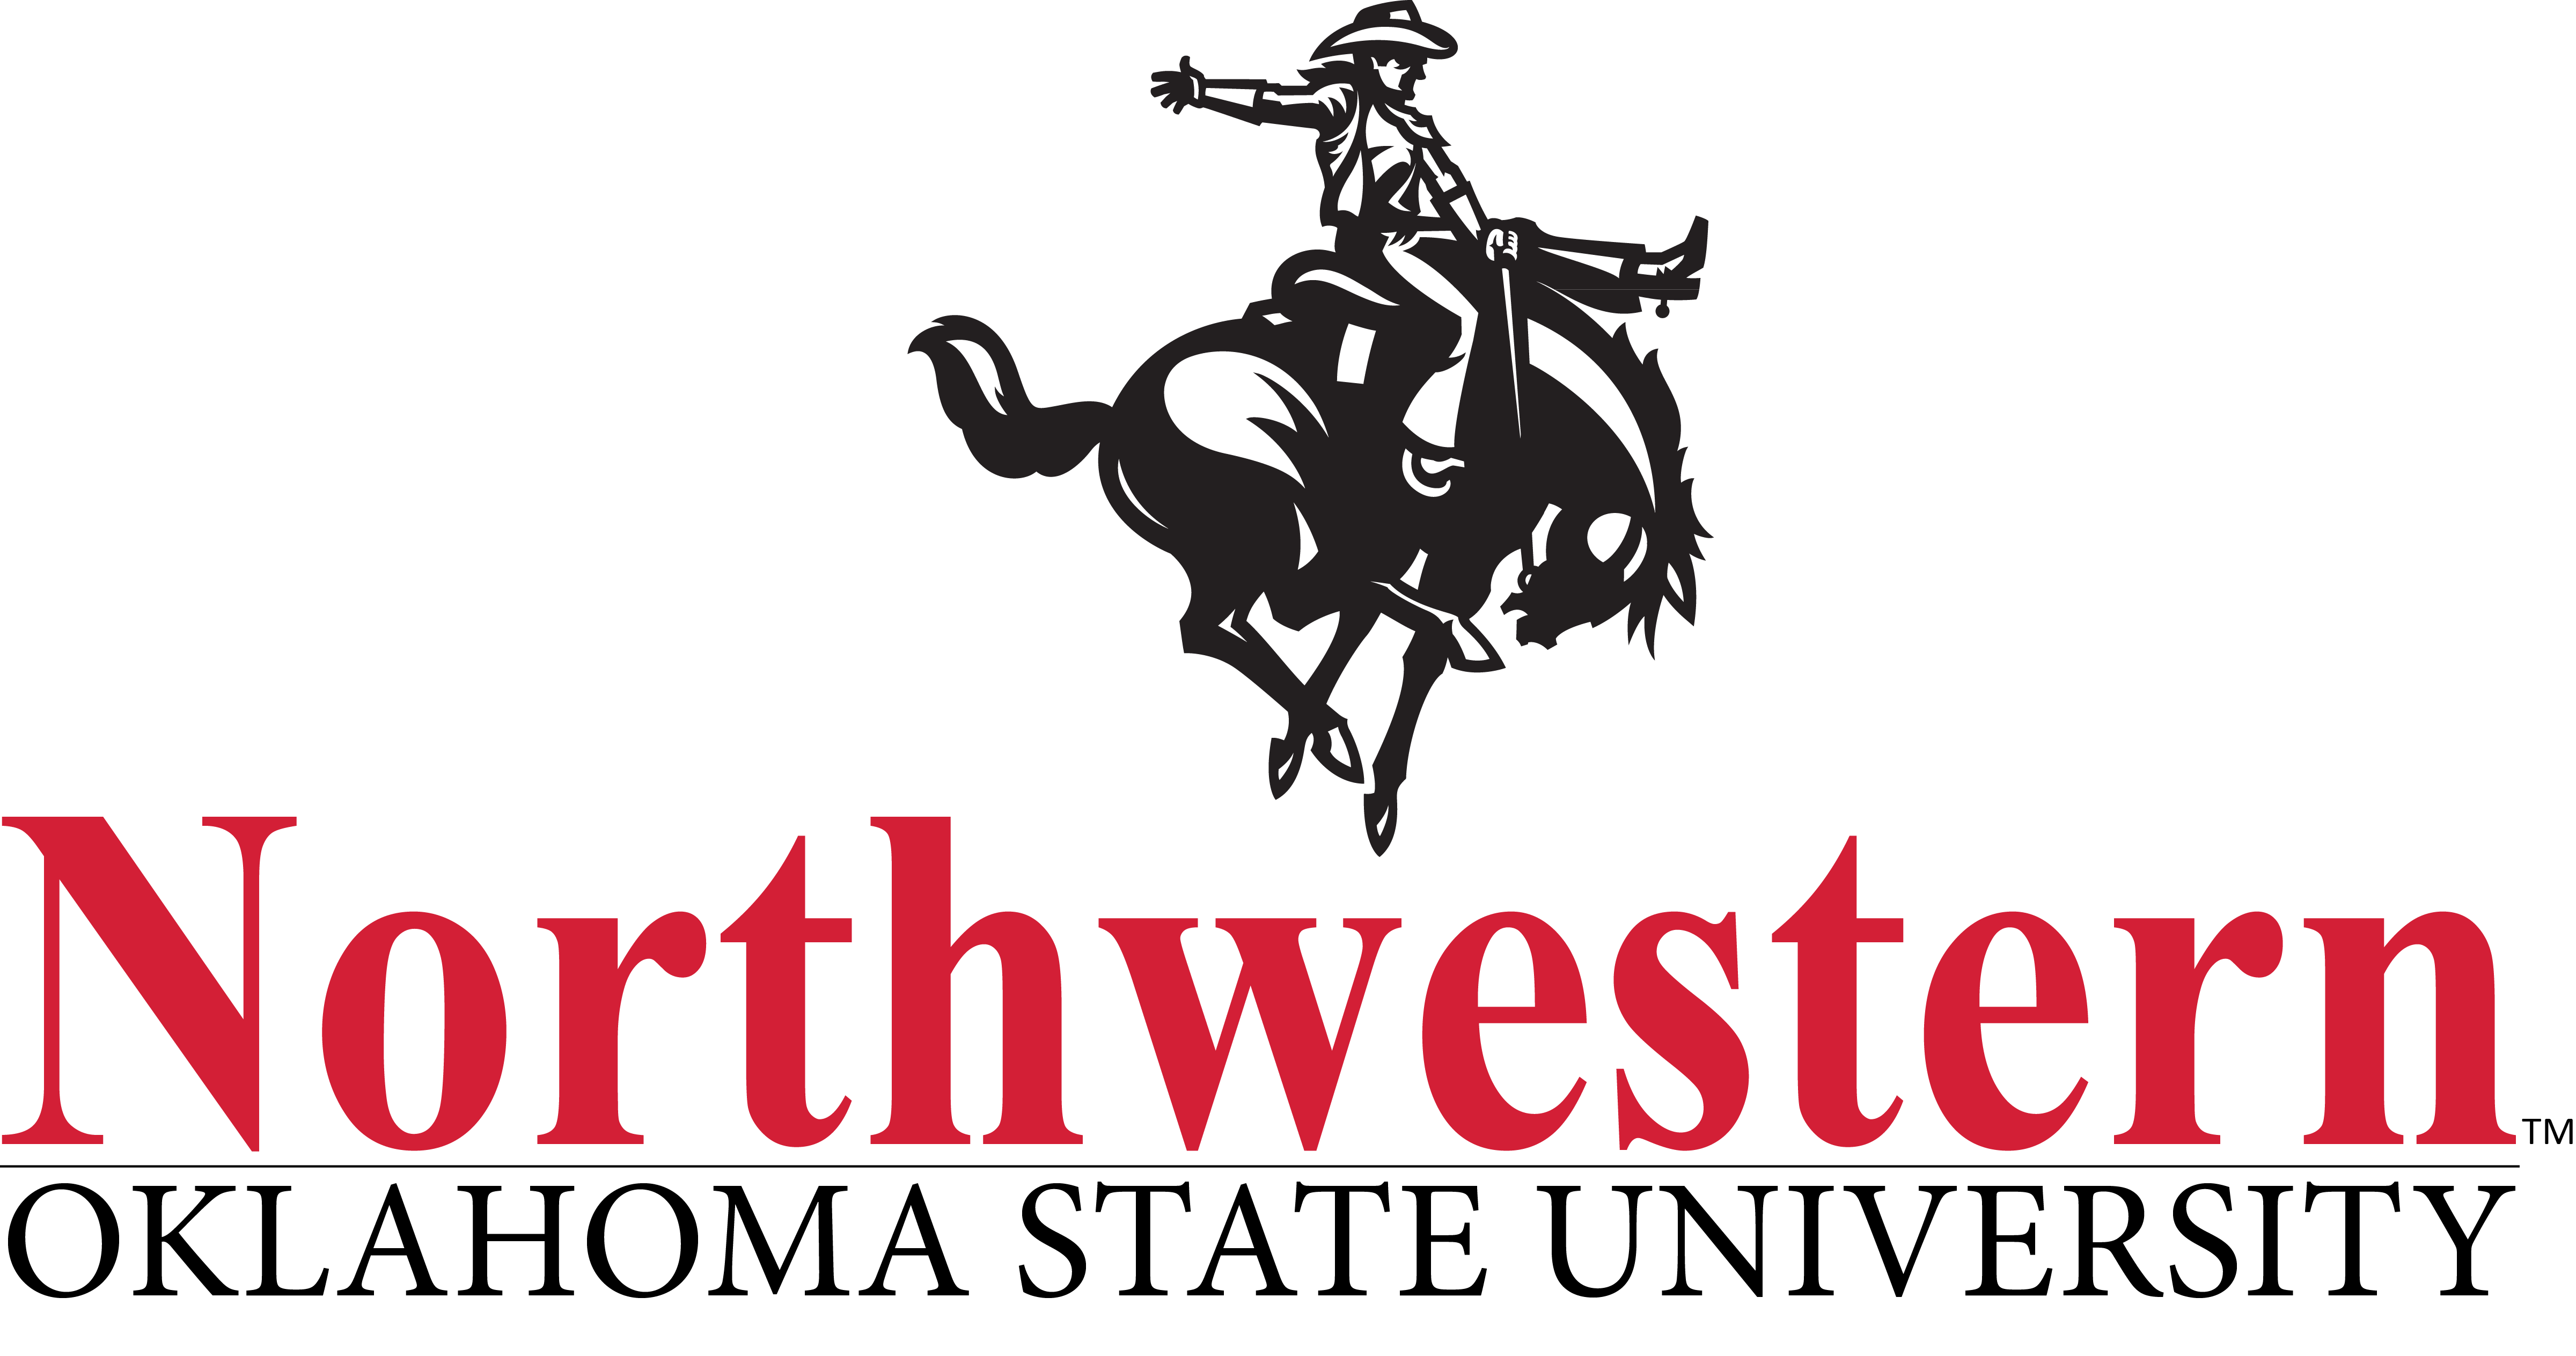 horse and rider wordmark